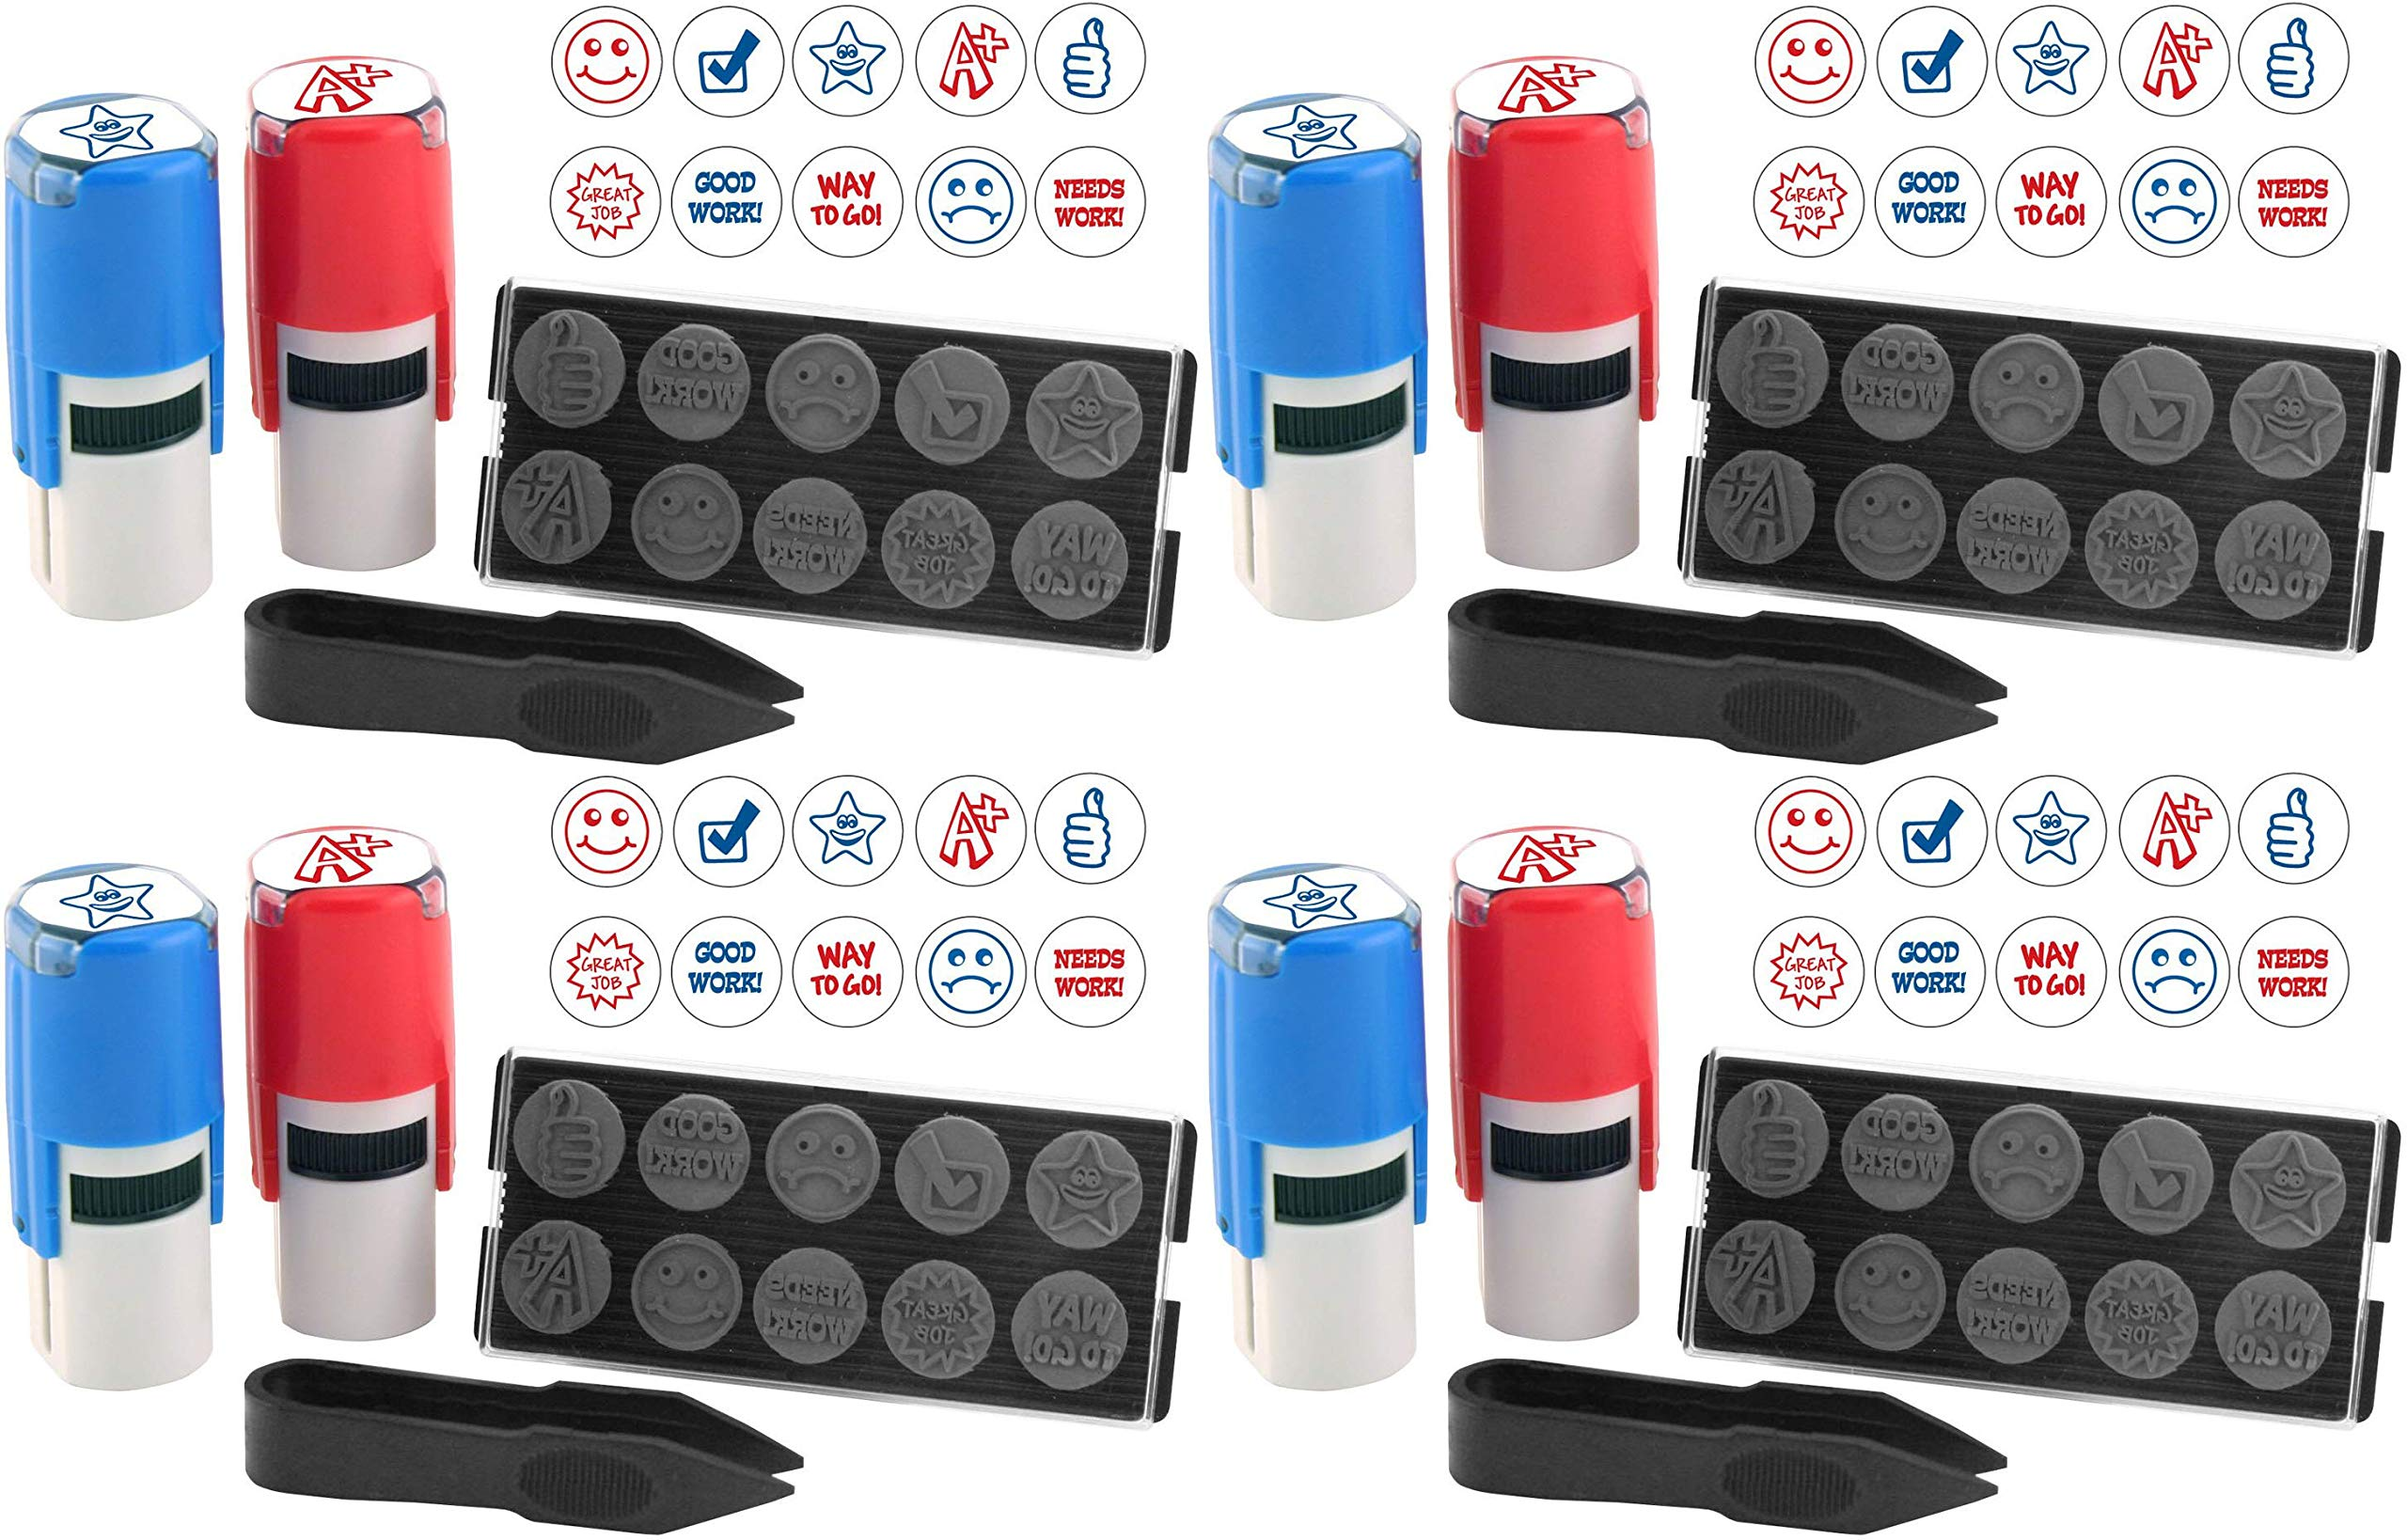 Stamp-Ever 10-in-1 Teachers' Student Work Stamp Kit, 10 Interchangable Self-Inking Stamps, 5/8-Inch Impression, Blue/Red (4630) (Pack 4) by Stamp-Ever